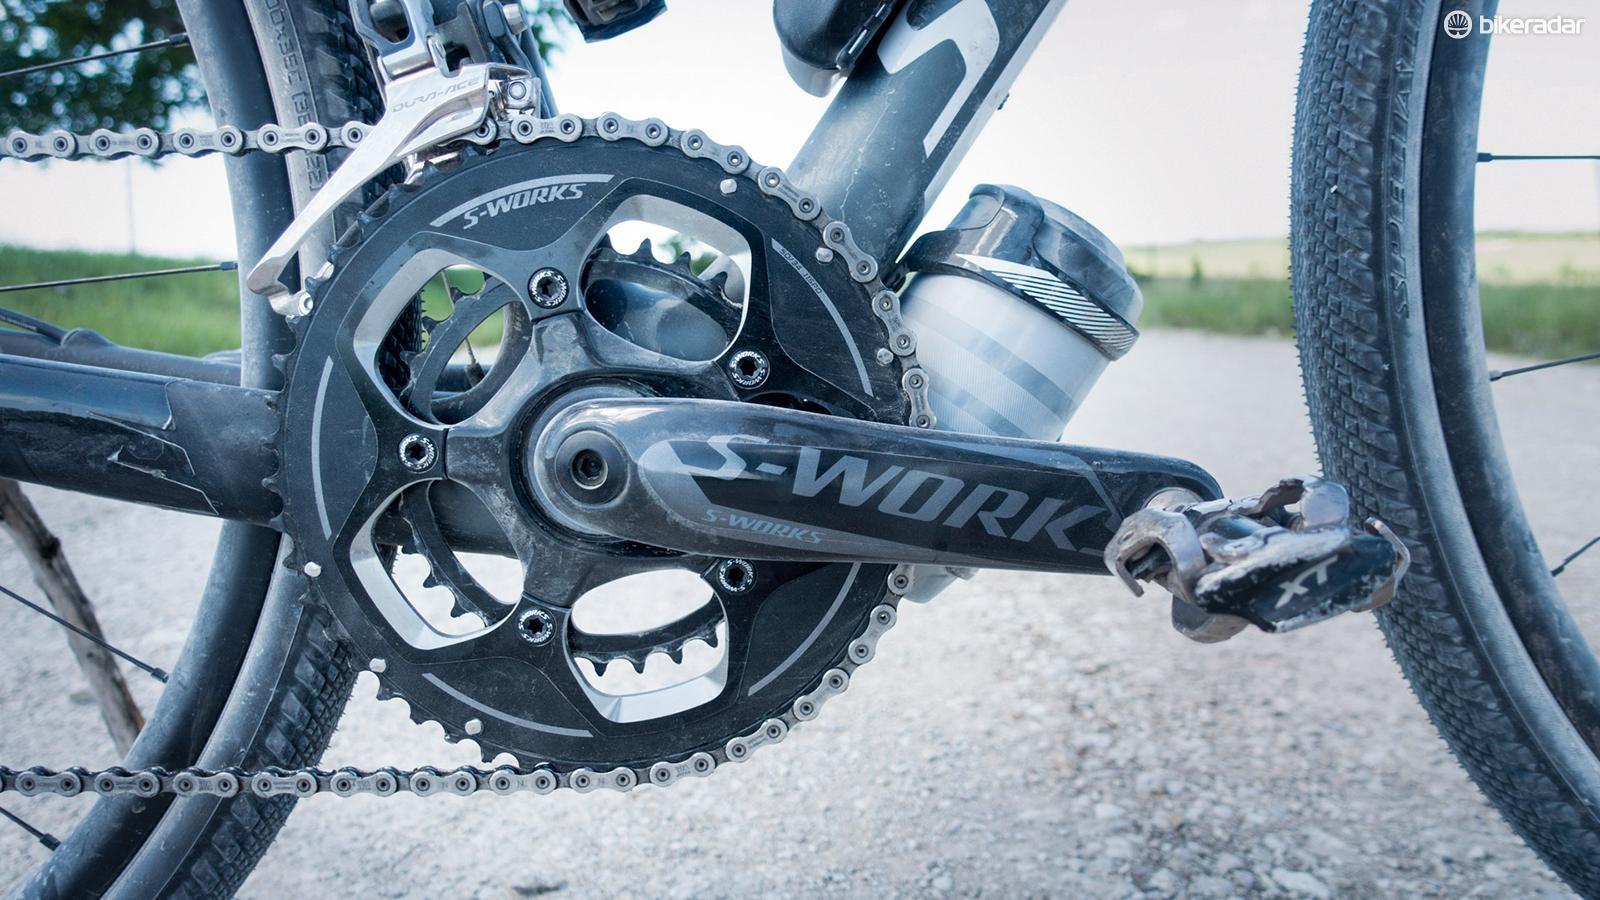 The stock 46/36t chainrings were swapped for a 50/34t combo